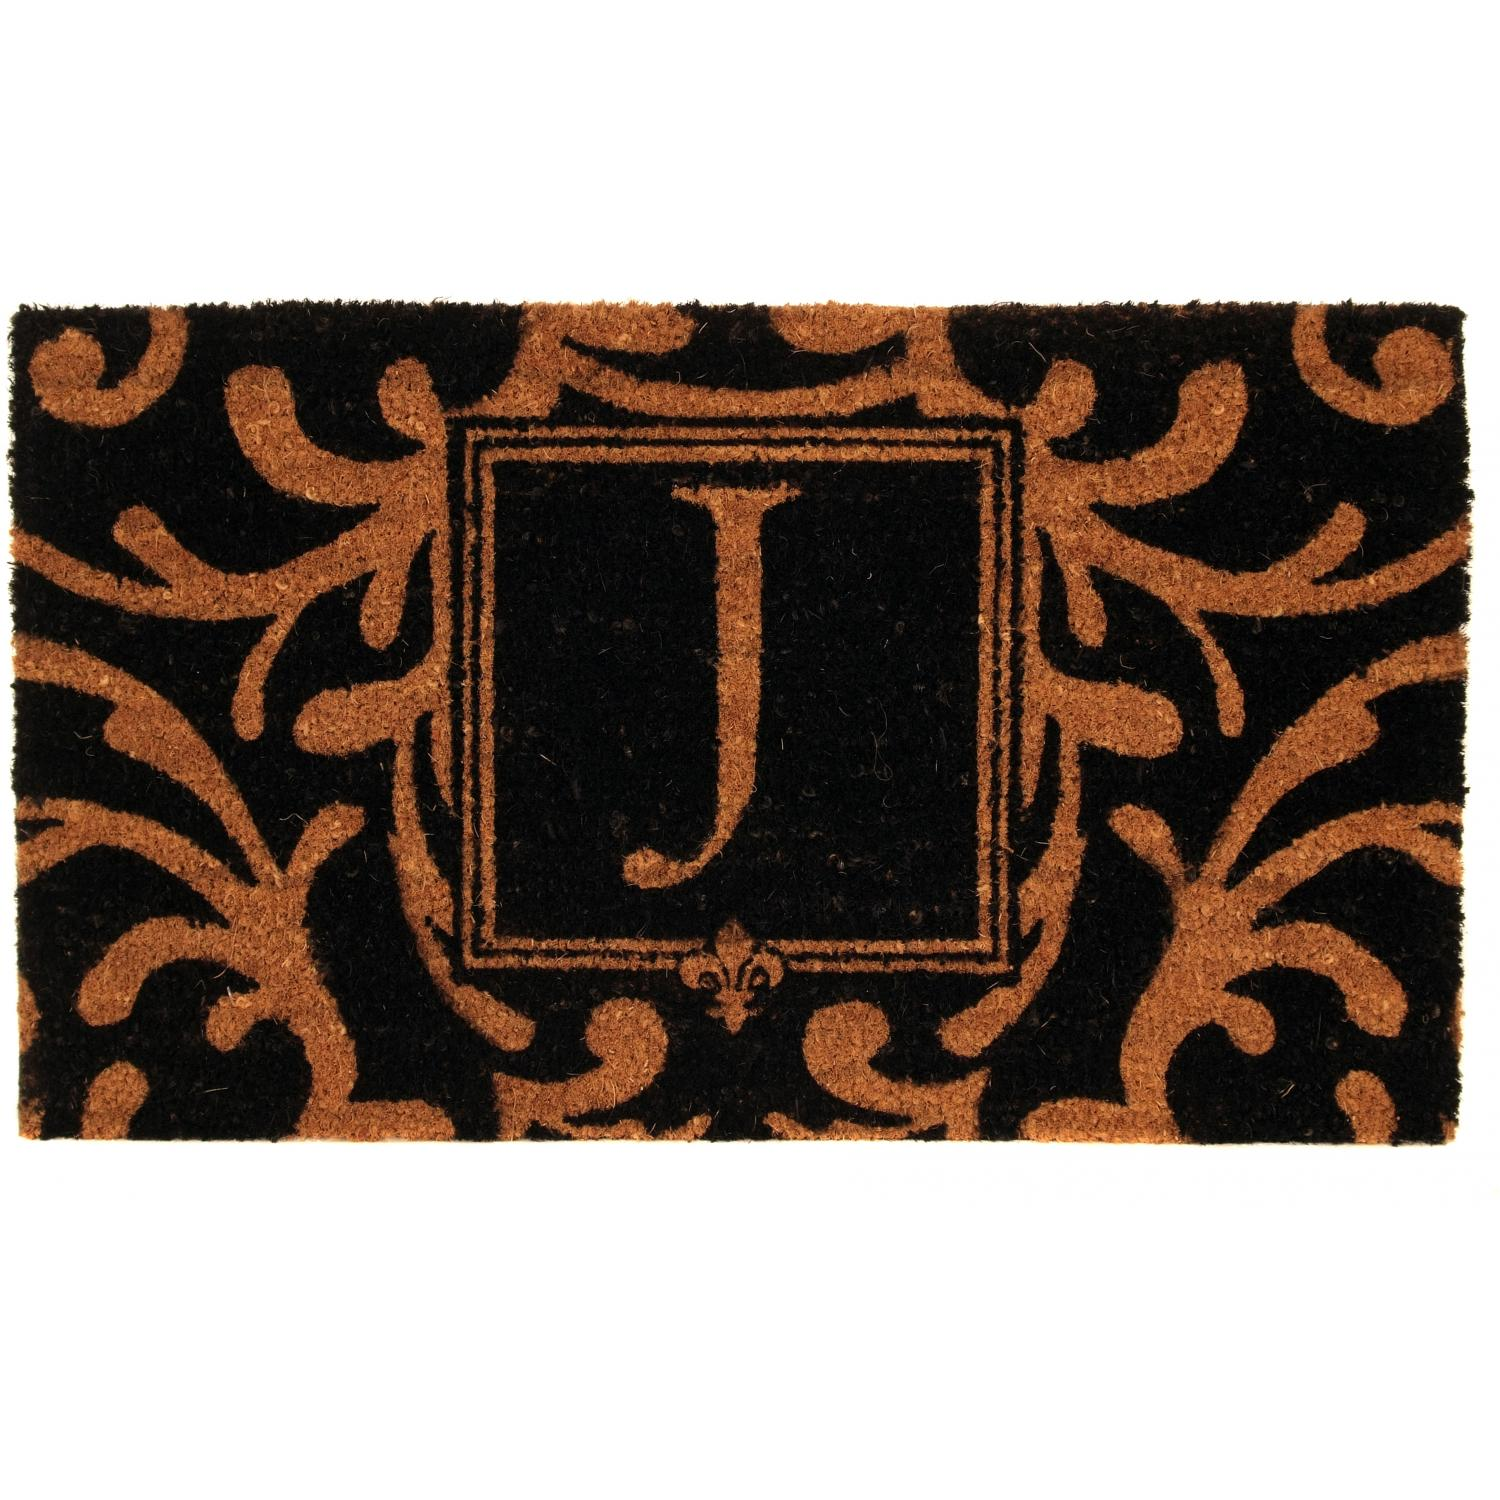 Picture of Evergreen Classic Block Monogram Coir Door Mat - Letter J